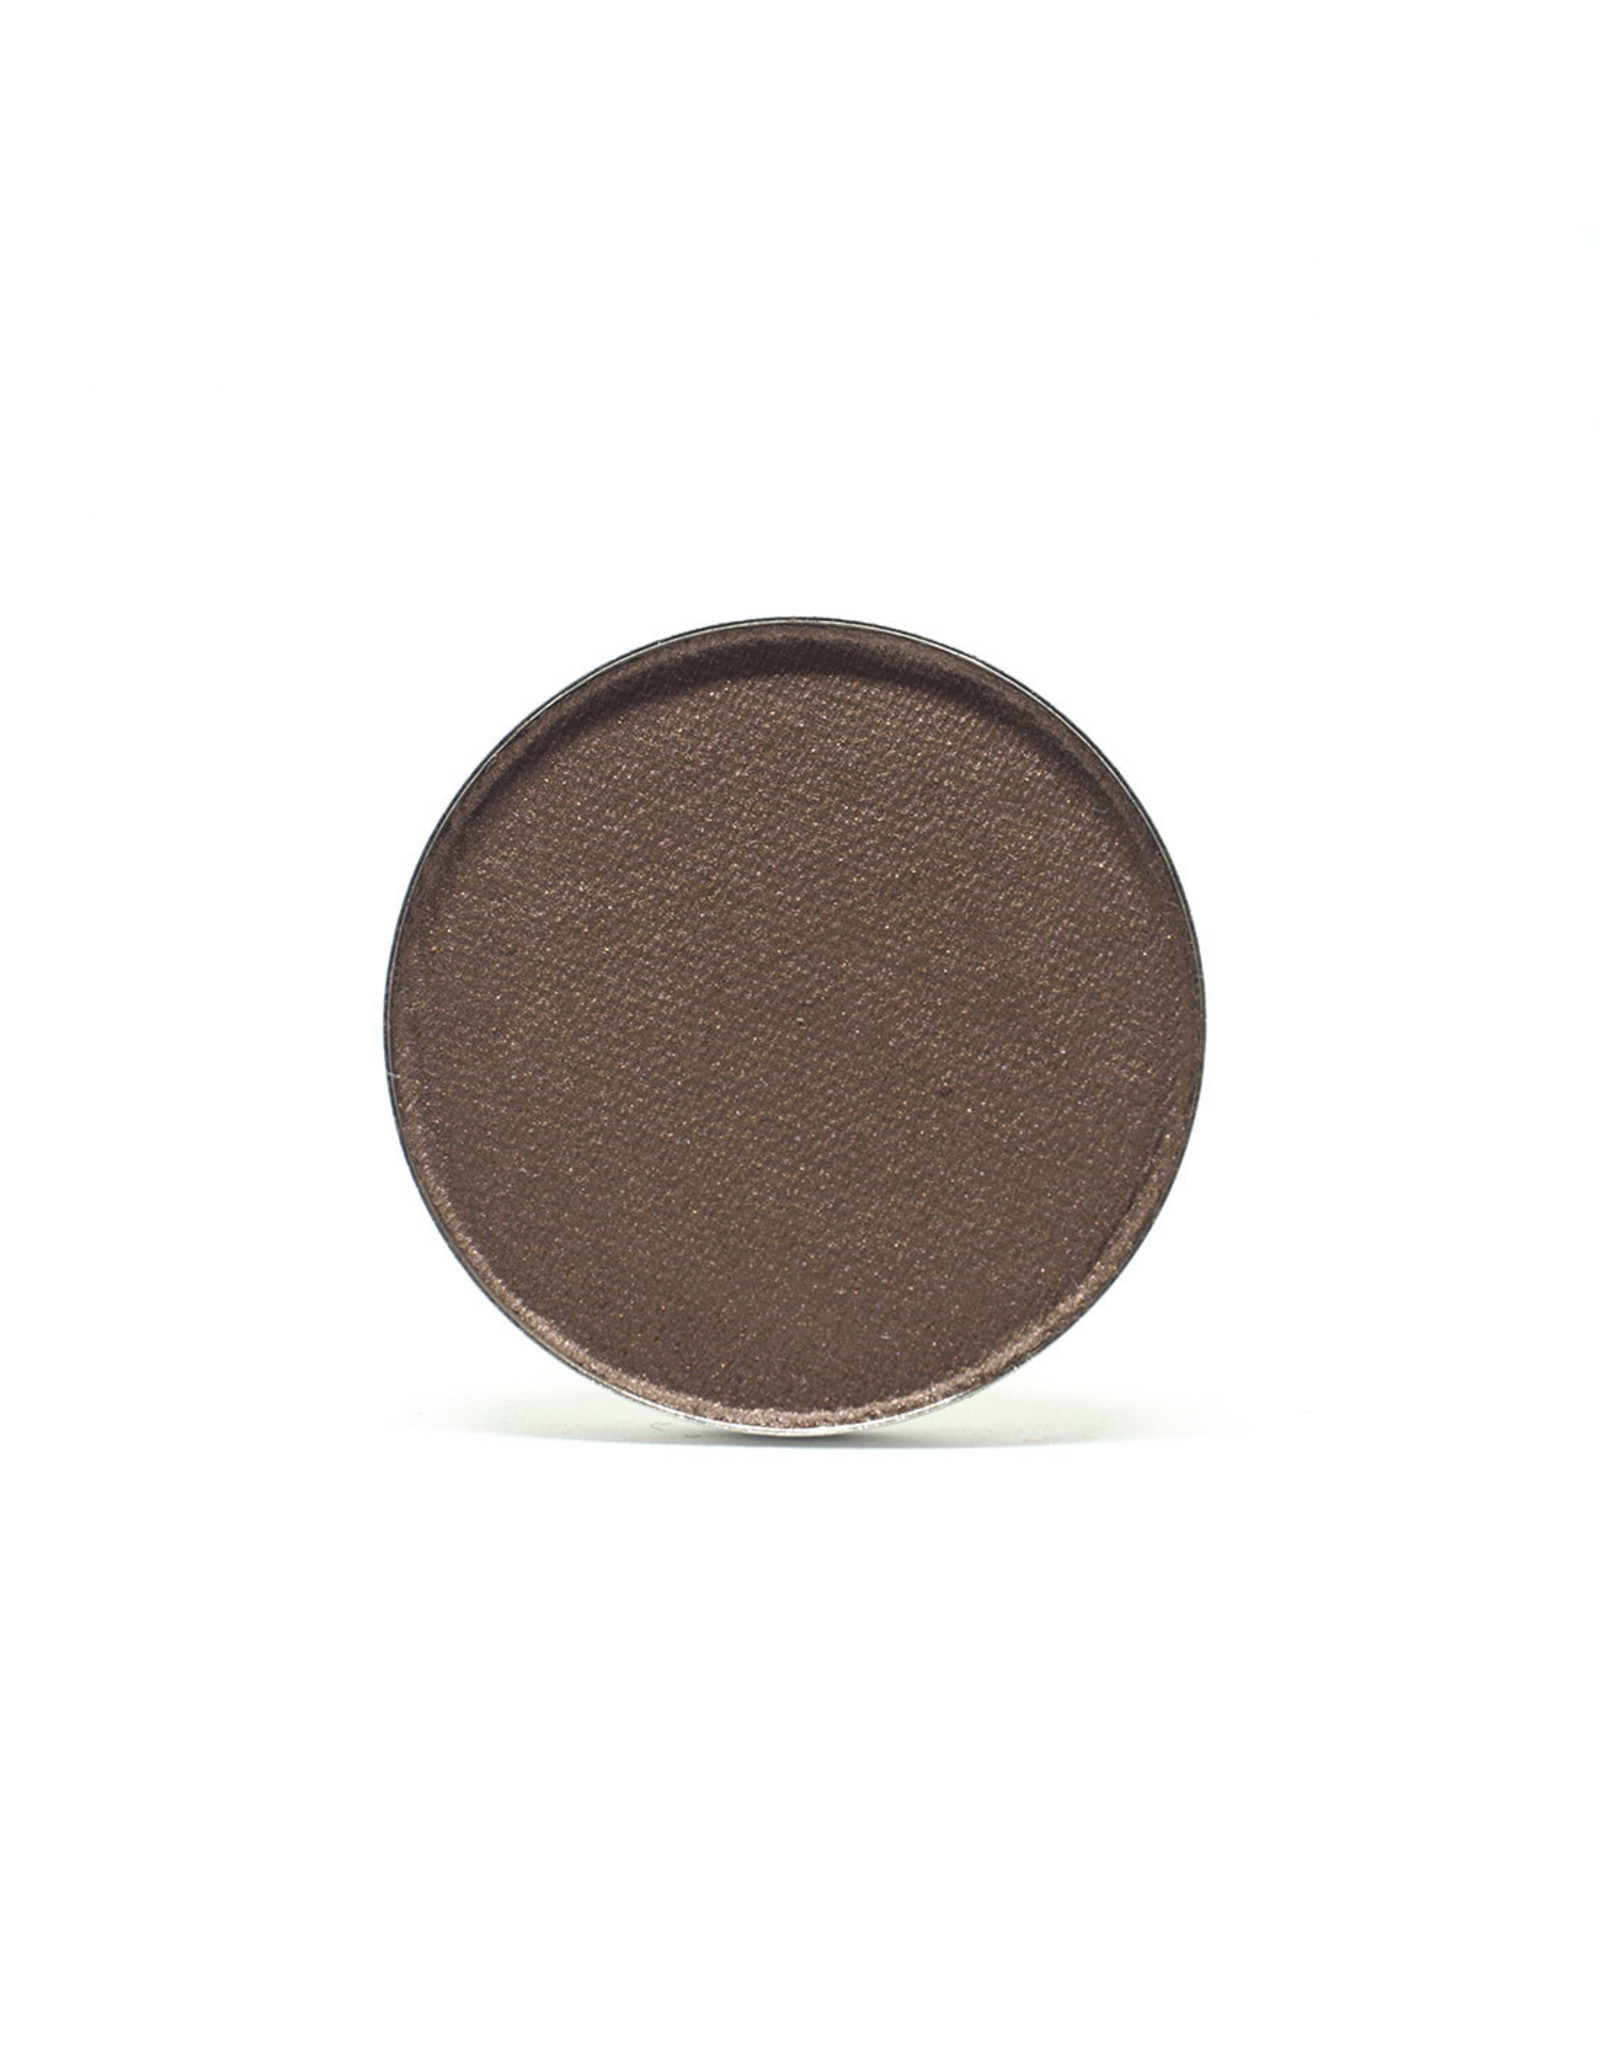 Elate Cosmetics Elate Create Pressed Eye Colour - Rise